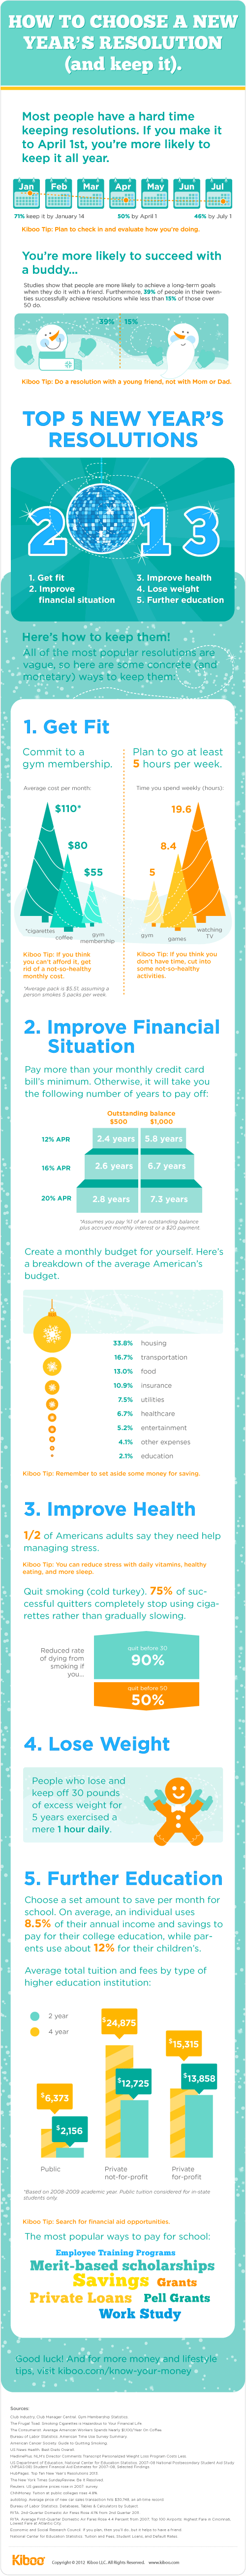 How To Choose A New Year's Resolution (and keep it)  [INFOGRAPHIC]